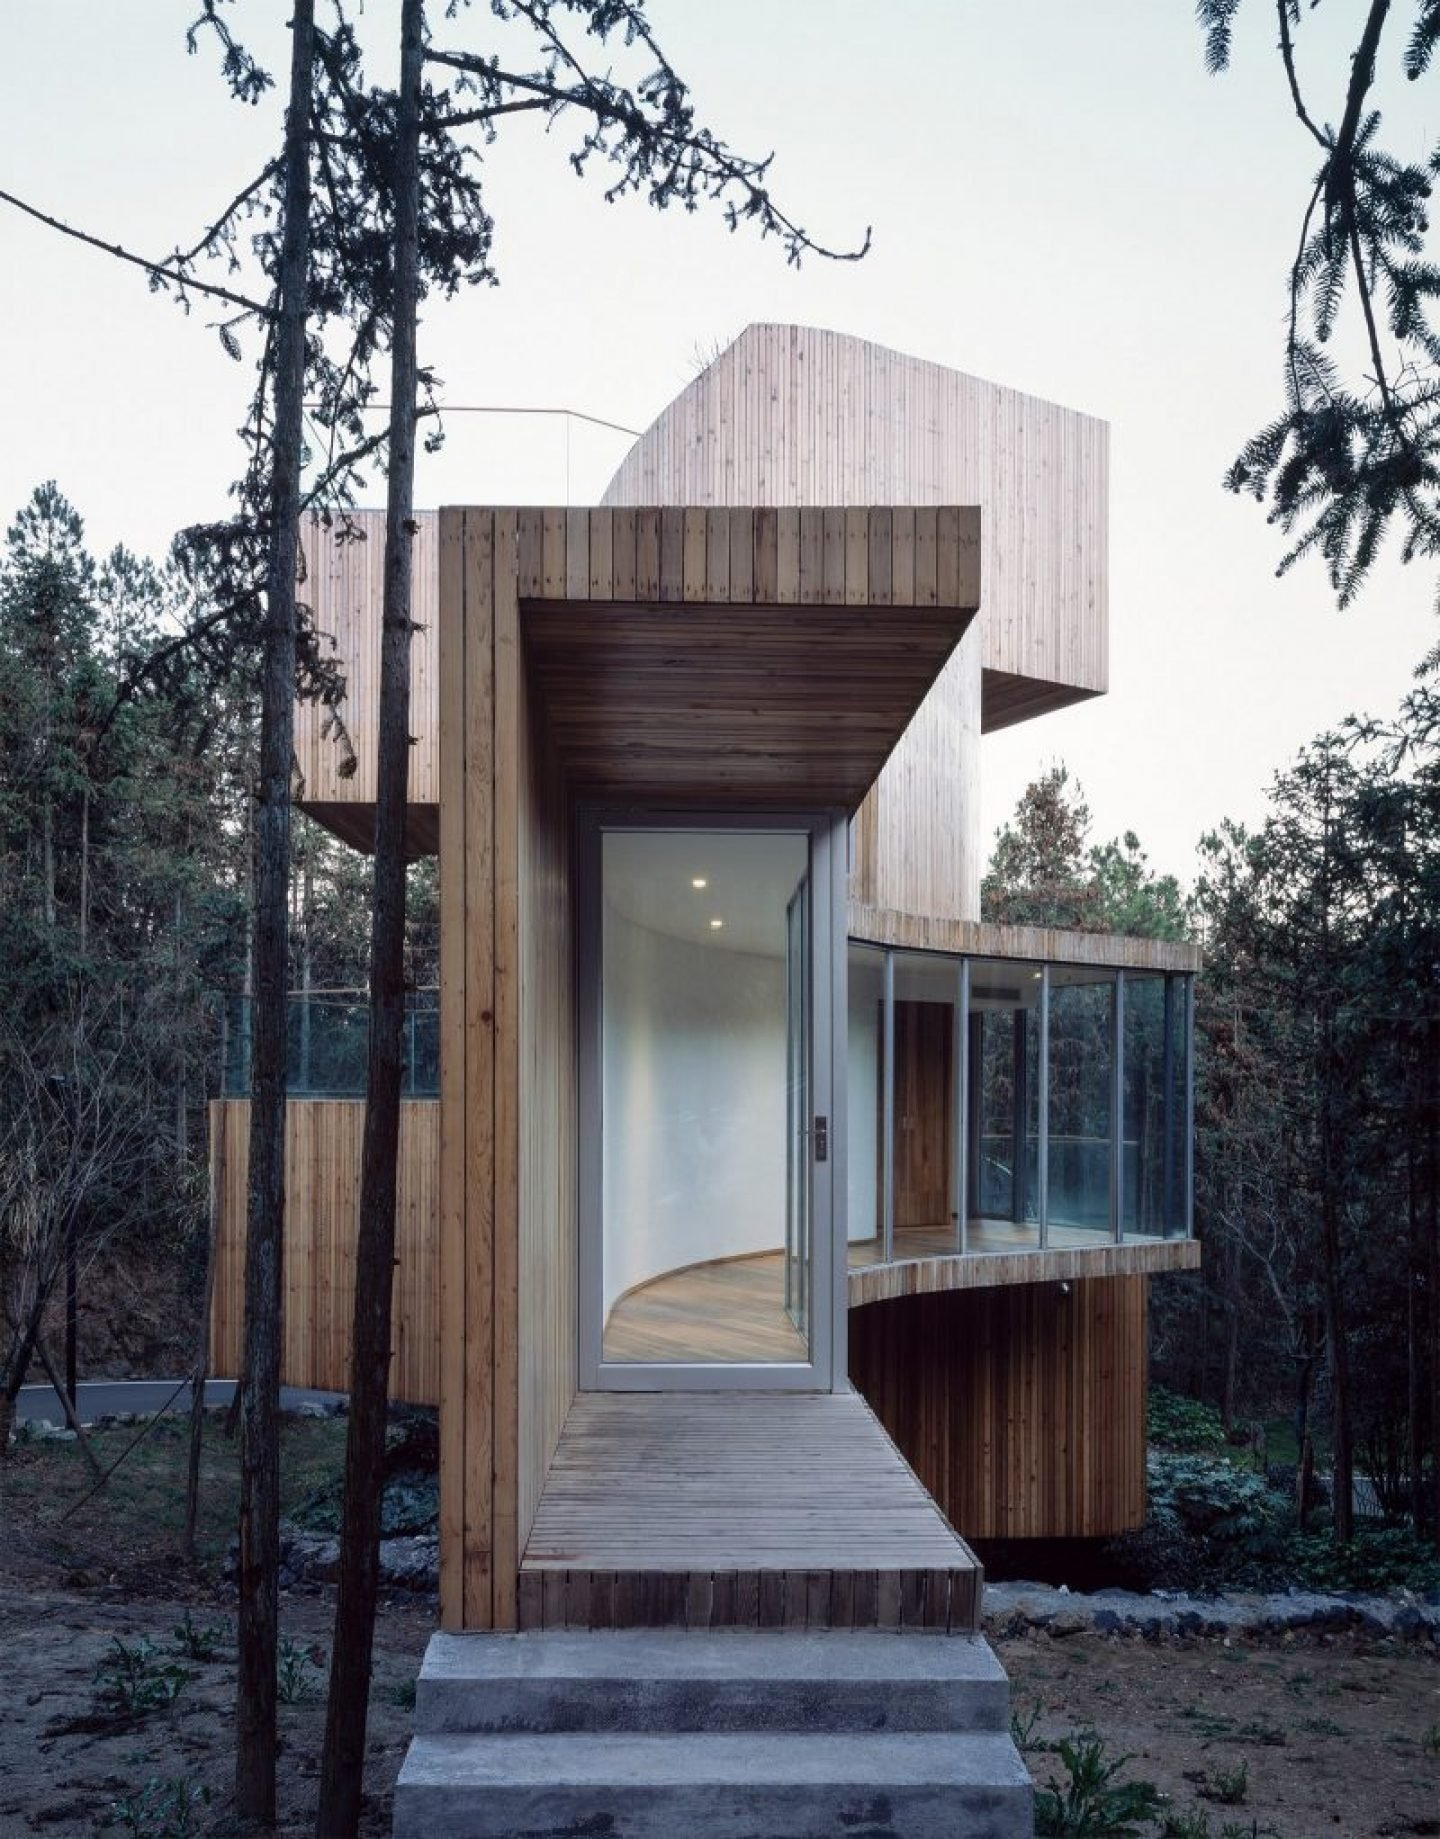 Bengo_Studio_Architecture (5)